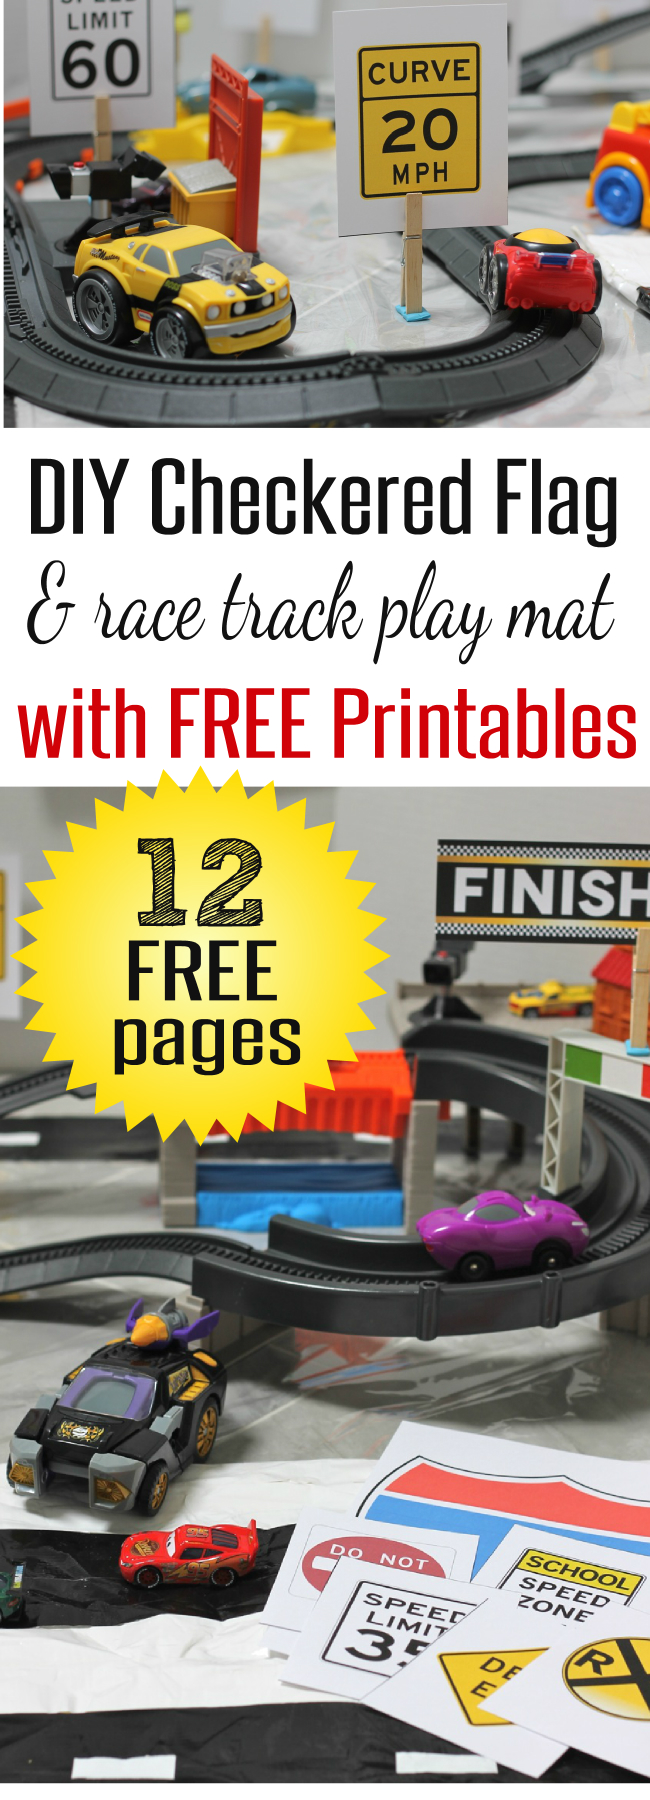 12 Free Pages of Race Car Printables and Road Signs to go with DIY Race Car and Checkered Flag Play Mat by HappyandBlessedHome.com